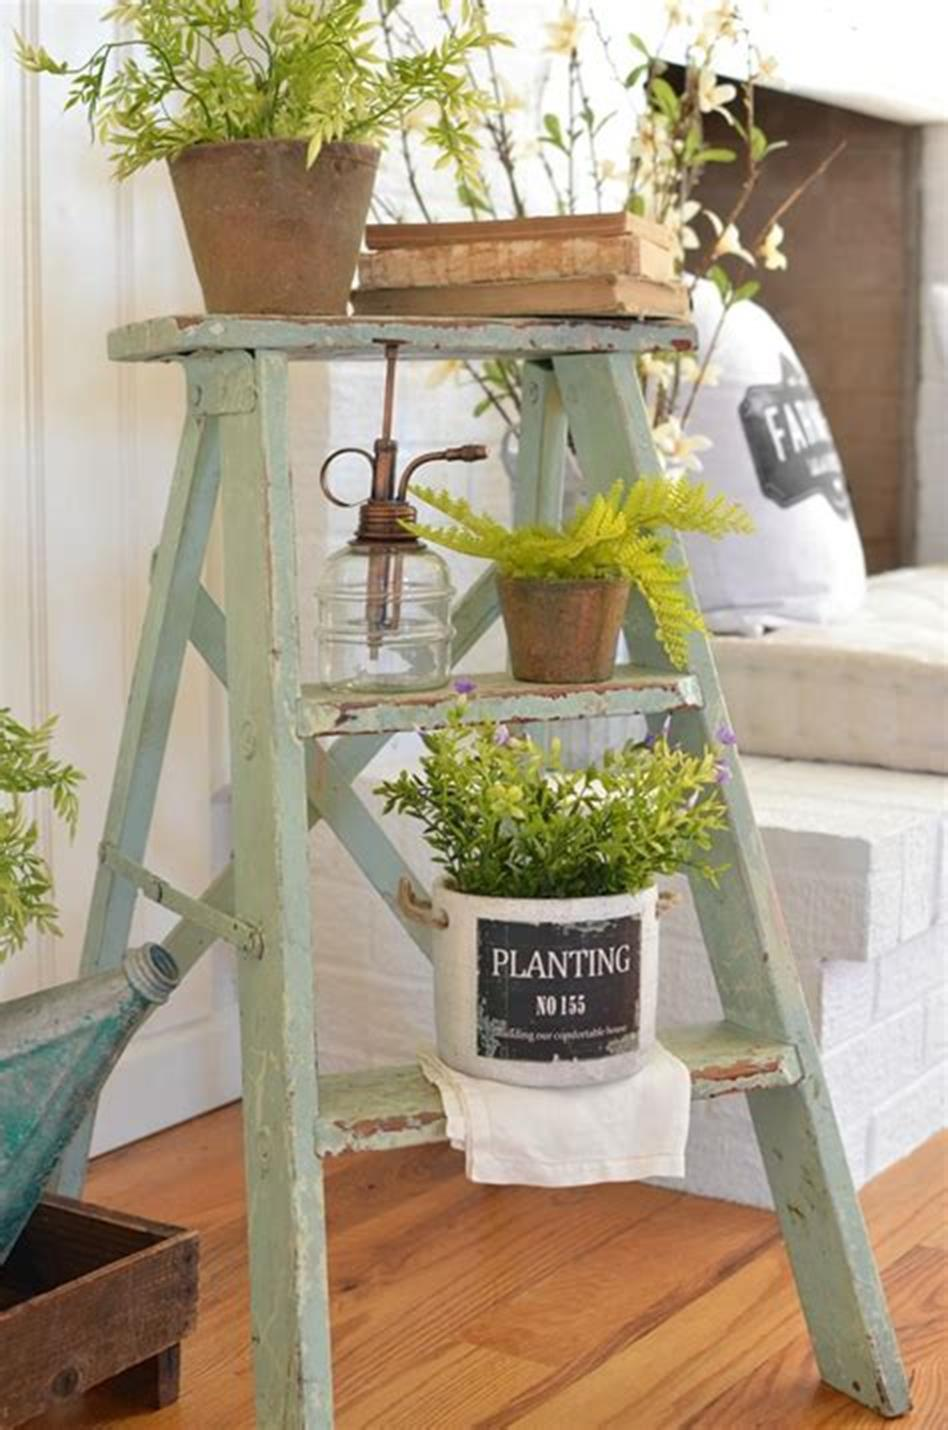 37 Beautiful Farmhouse Spring Decorating Ideas On a Budget for 2019 6